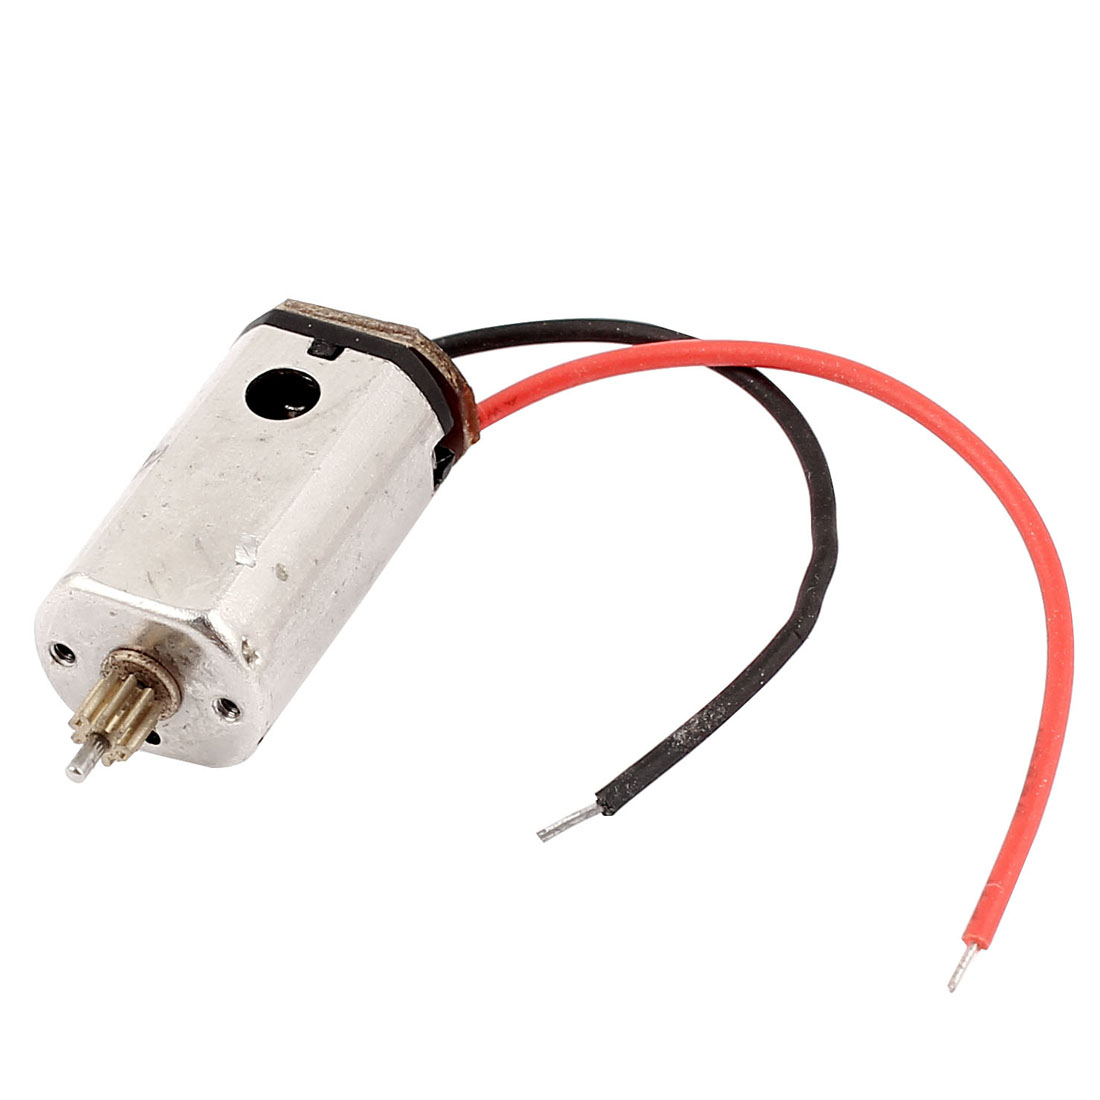 DC 7.4V 74000RPM Electric Toys Motor Repair Parts for DH 9103 RC Airplane